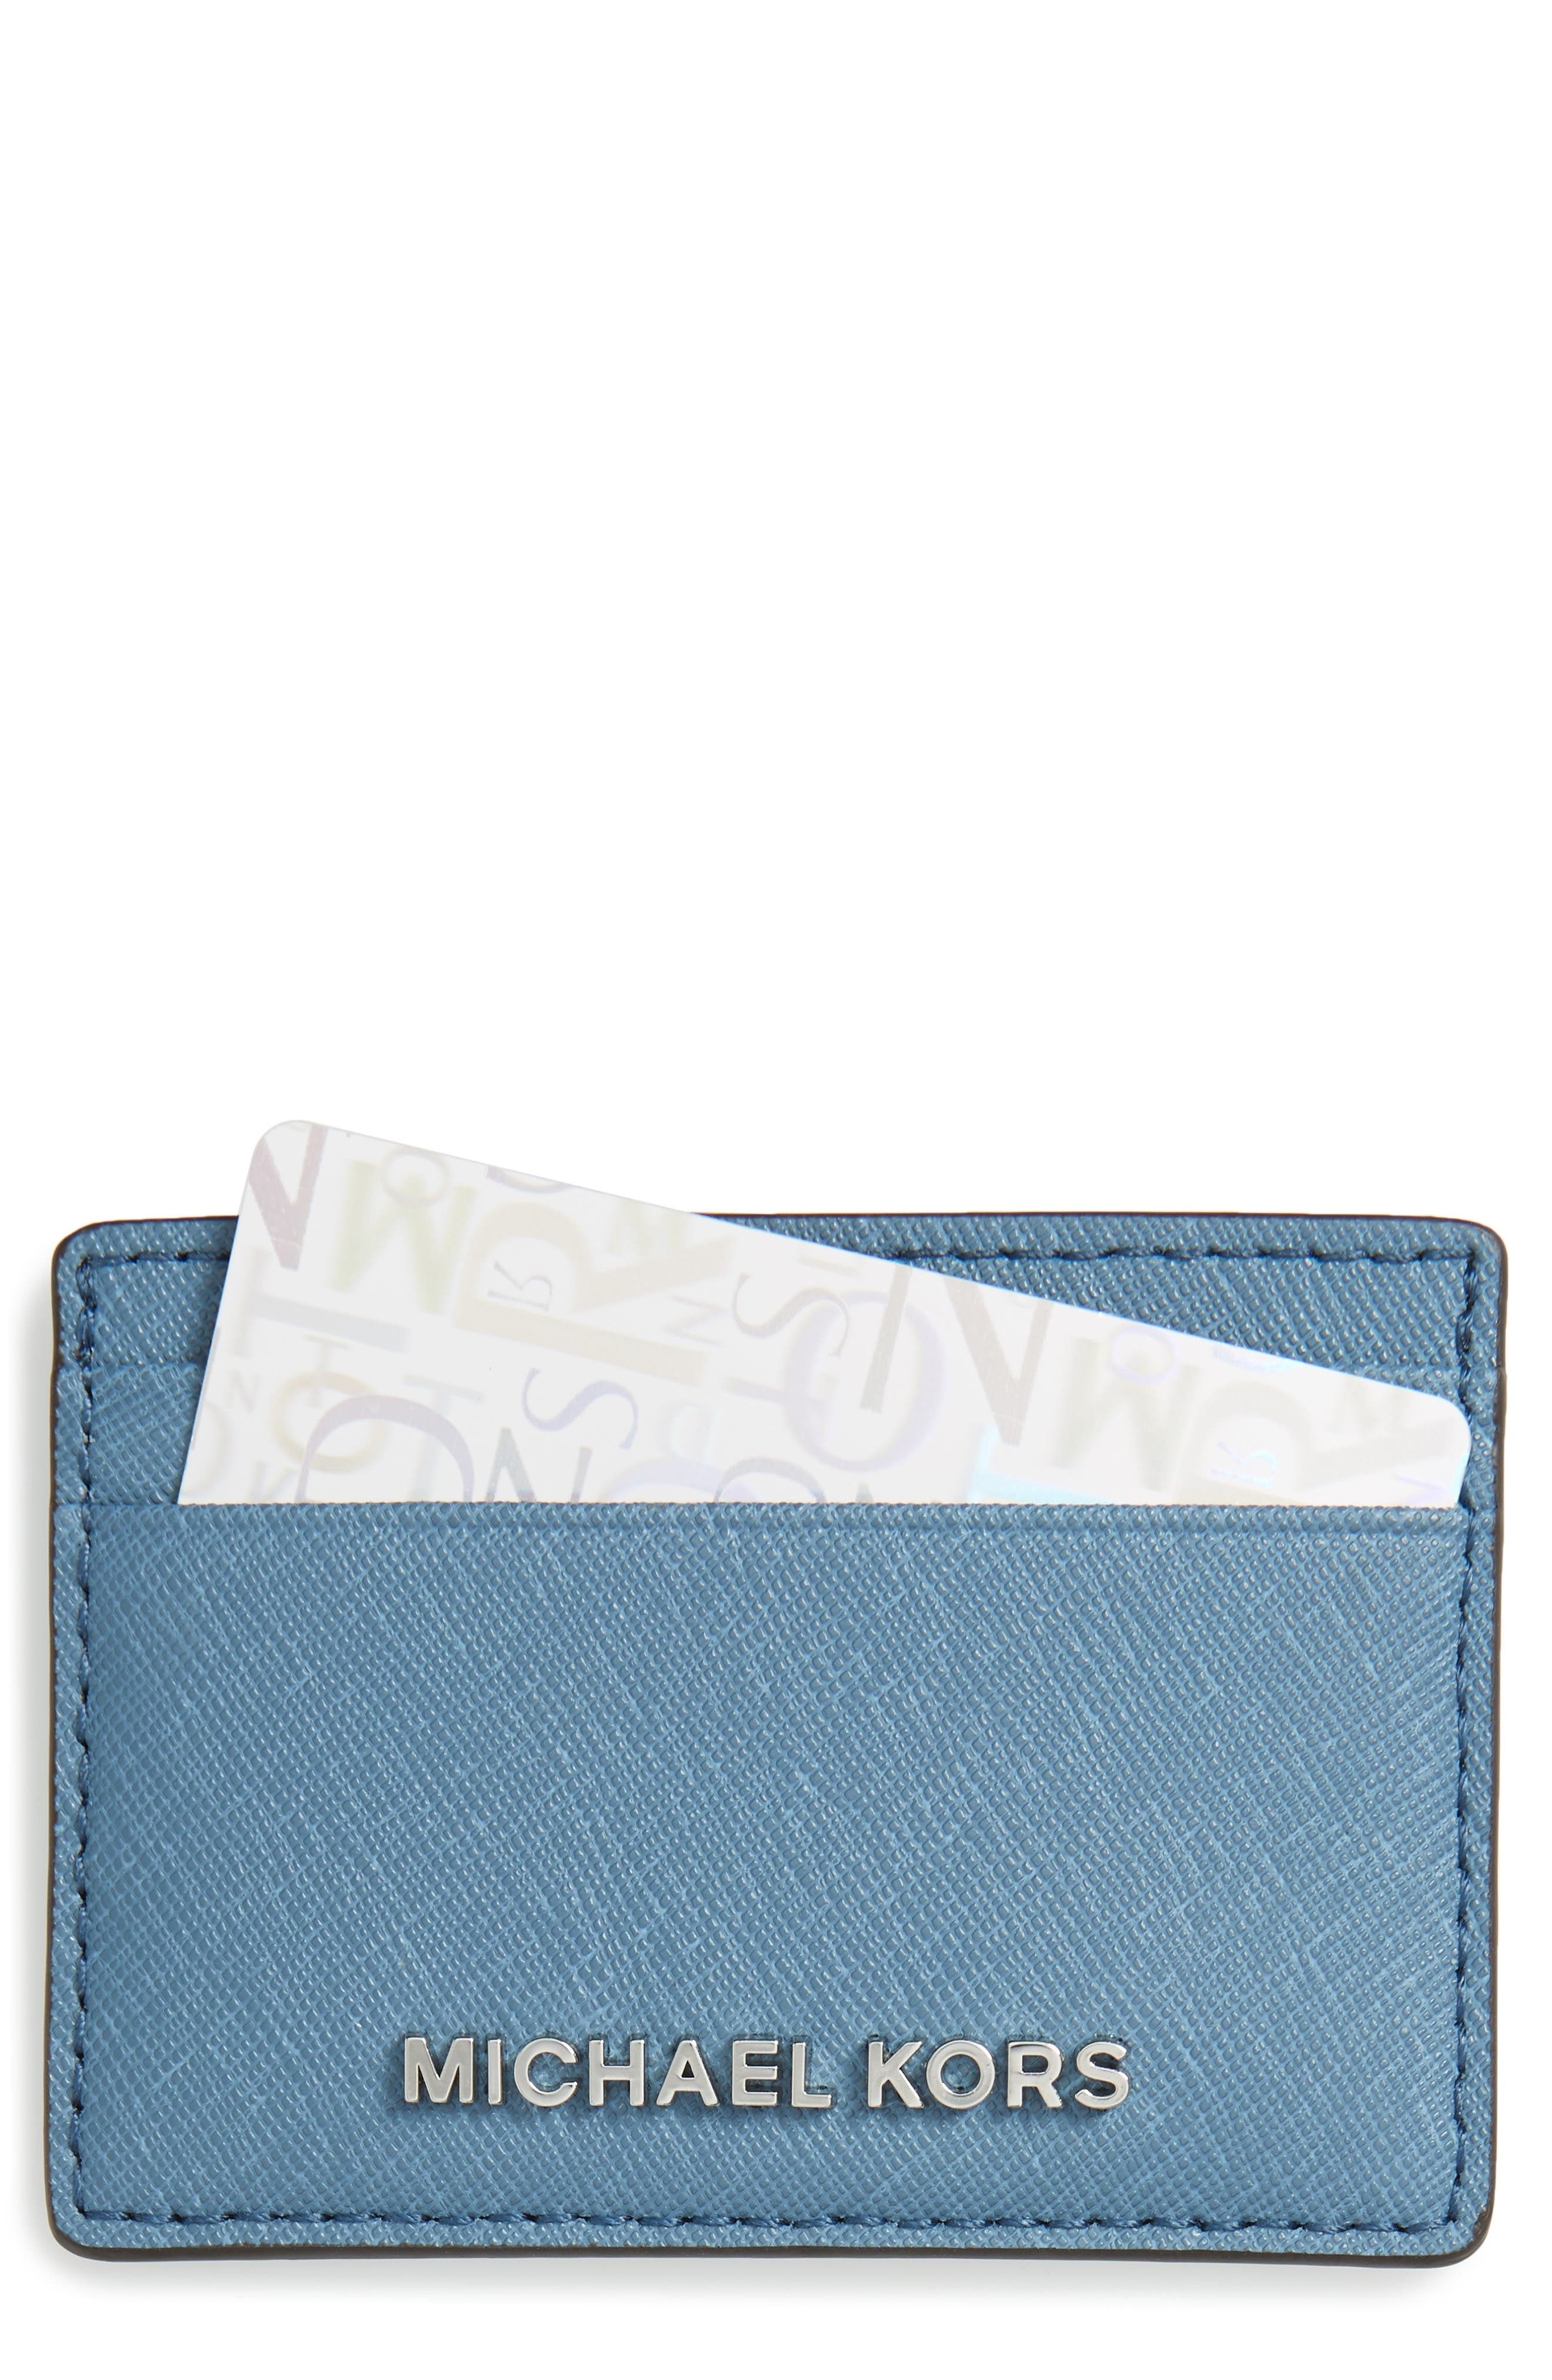 MICHAEL Michael Kors 'Jet Set' Card Holder